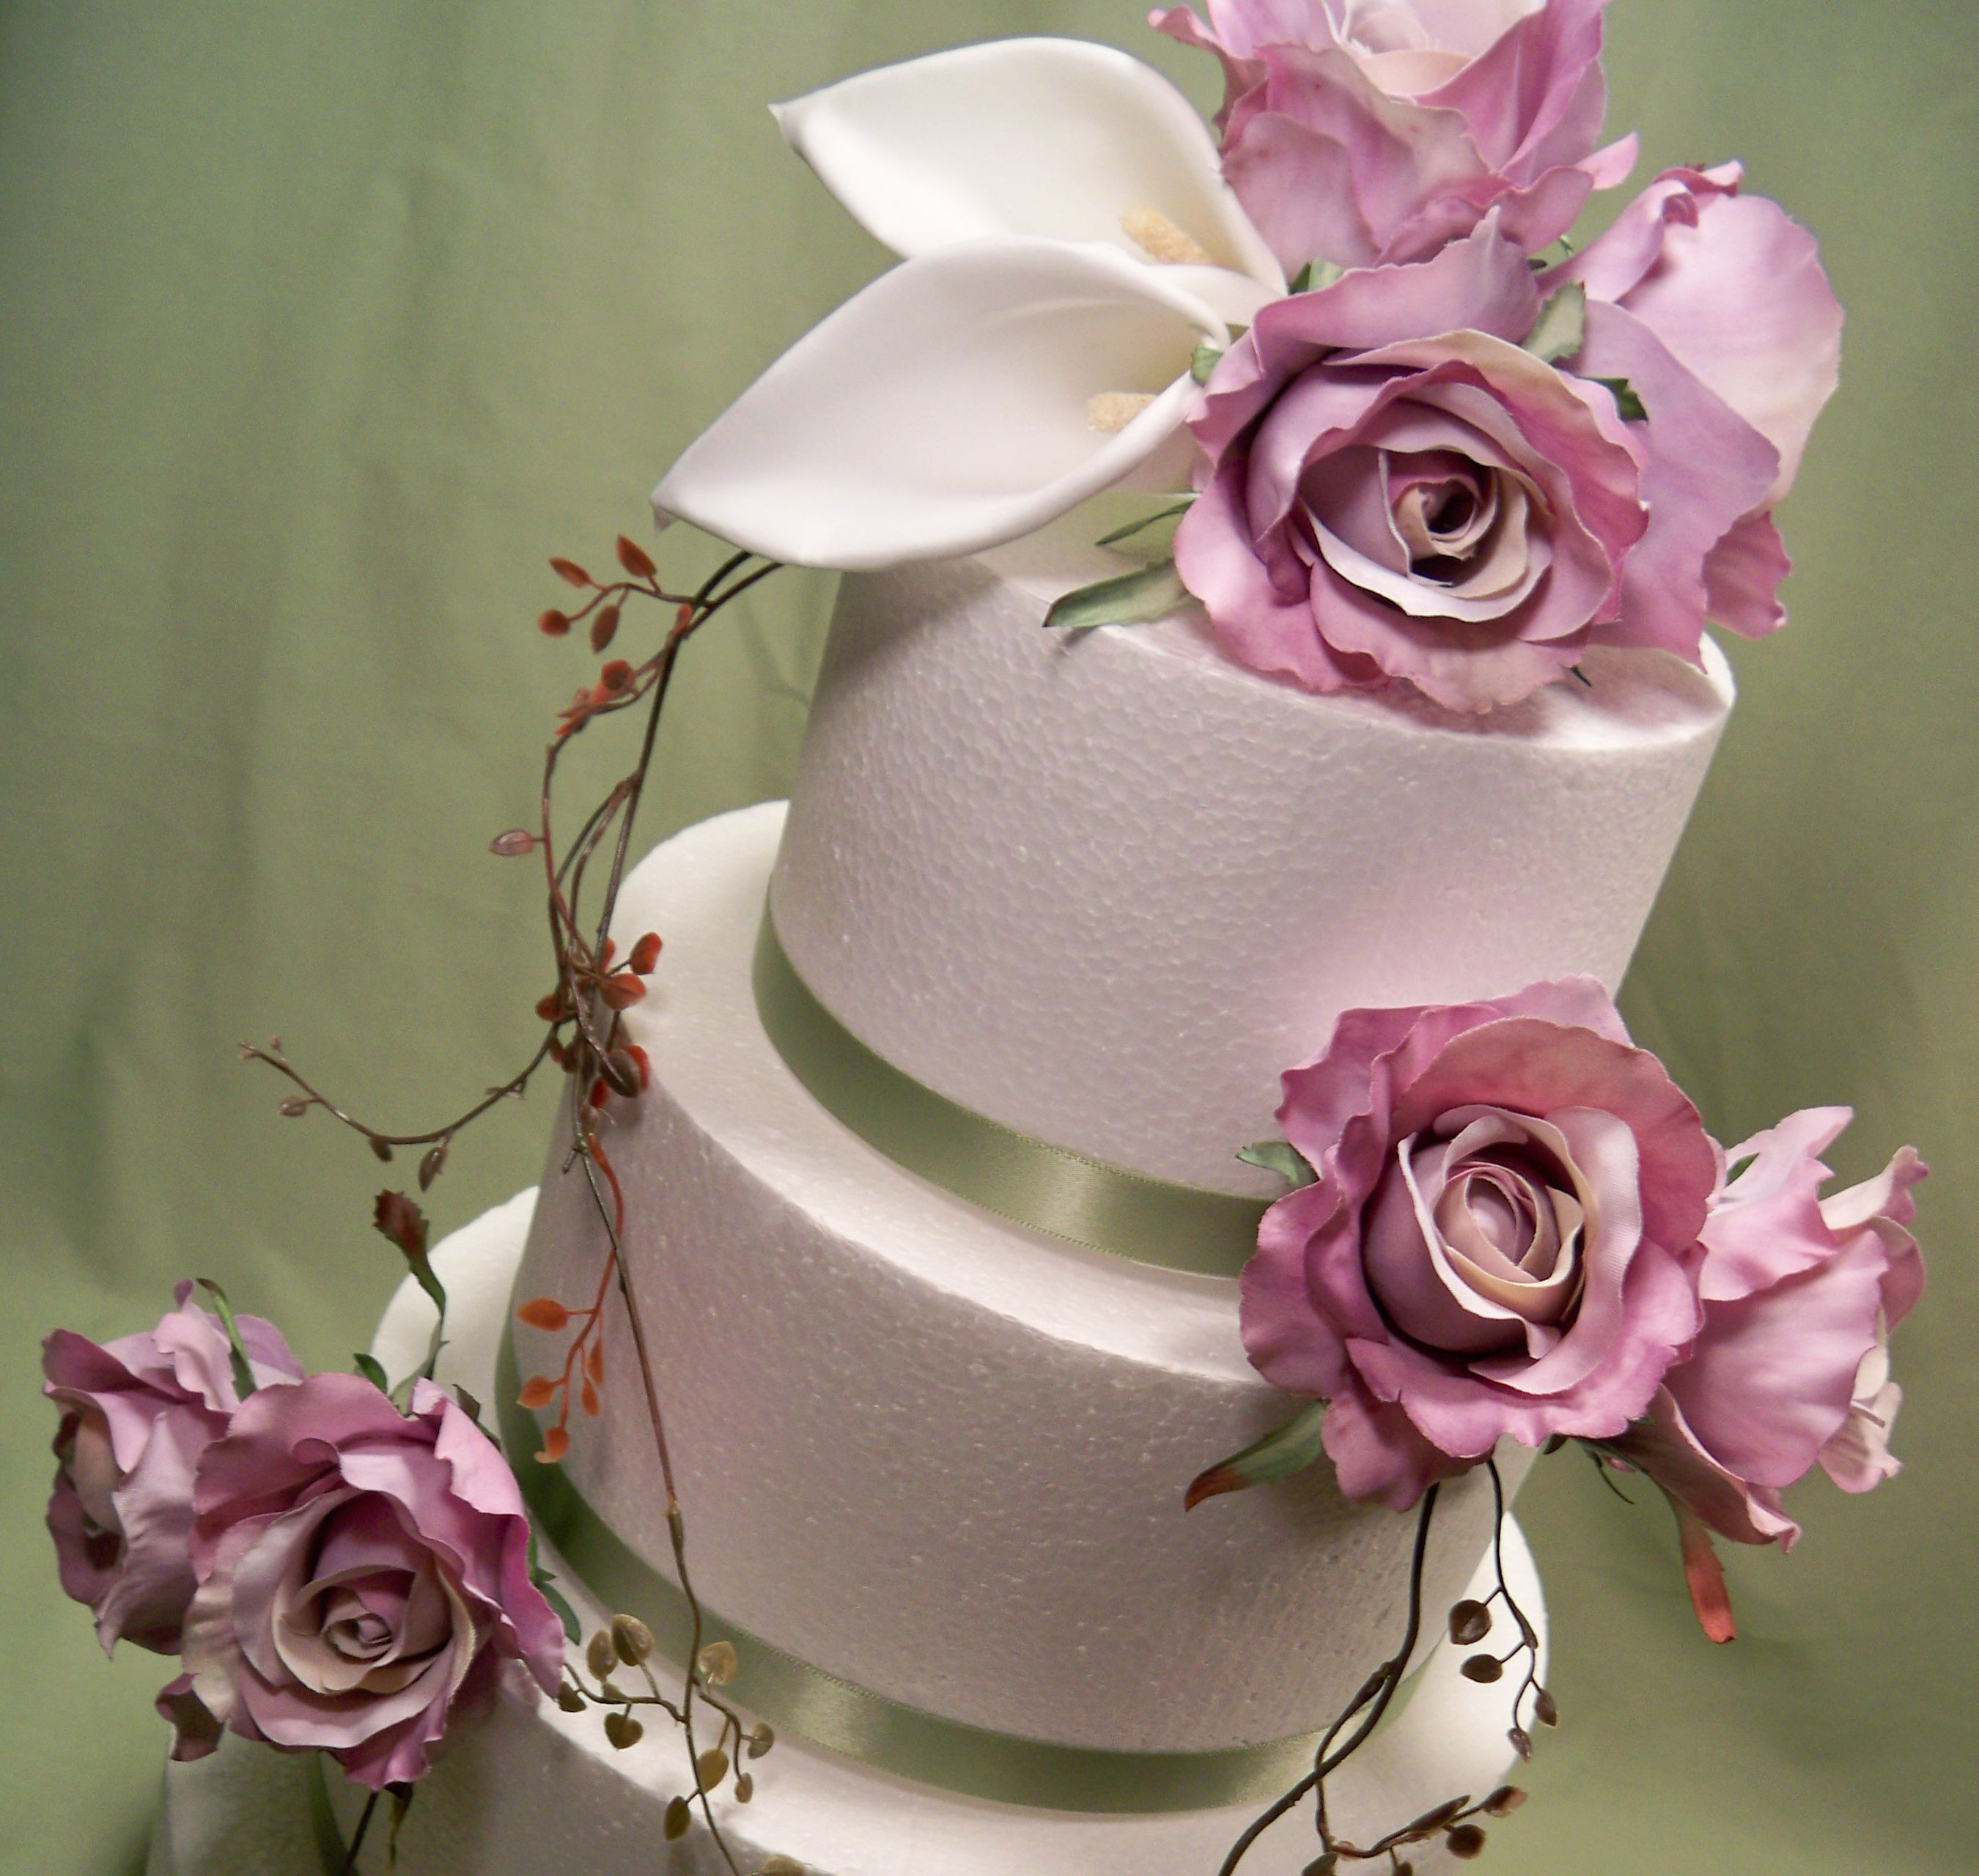 Flowers For Wedding Cakes Artificial  Lavender Rose and White Calla Lily Silk Flower Wedding